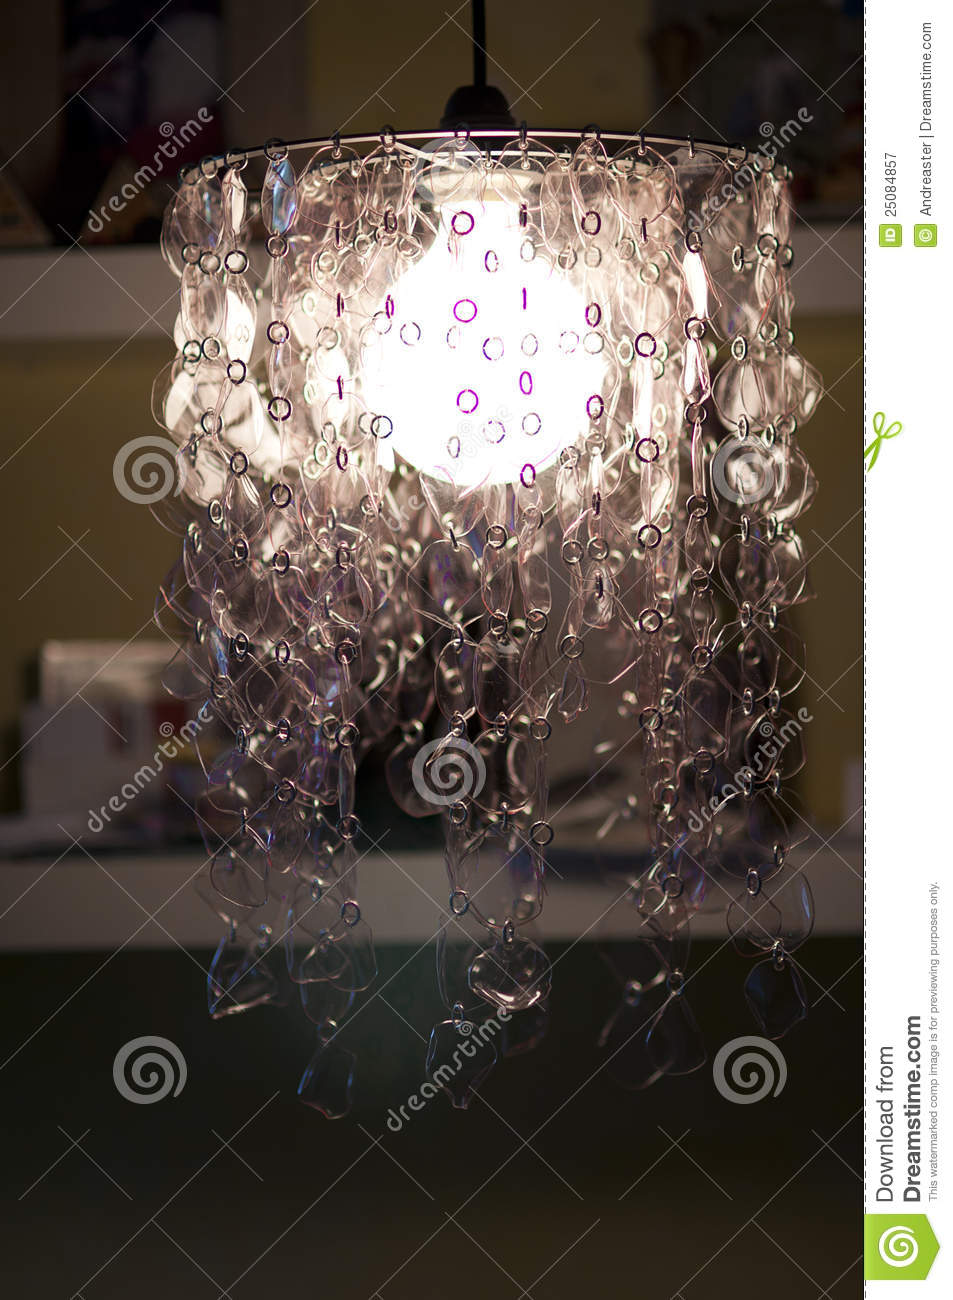 Recycled Plastic Bottle Lamp Lamp Holder From Recycled Plastic Bottles Stock Image Image Of